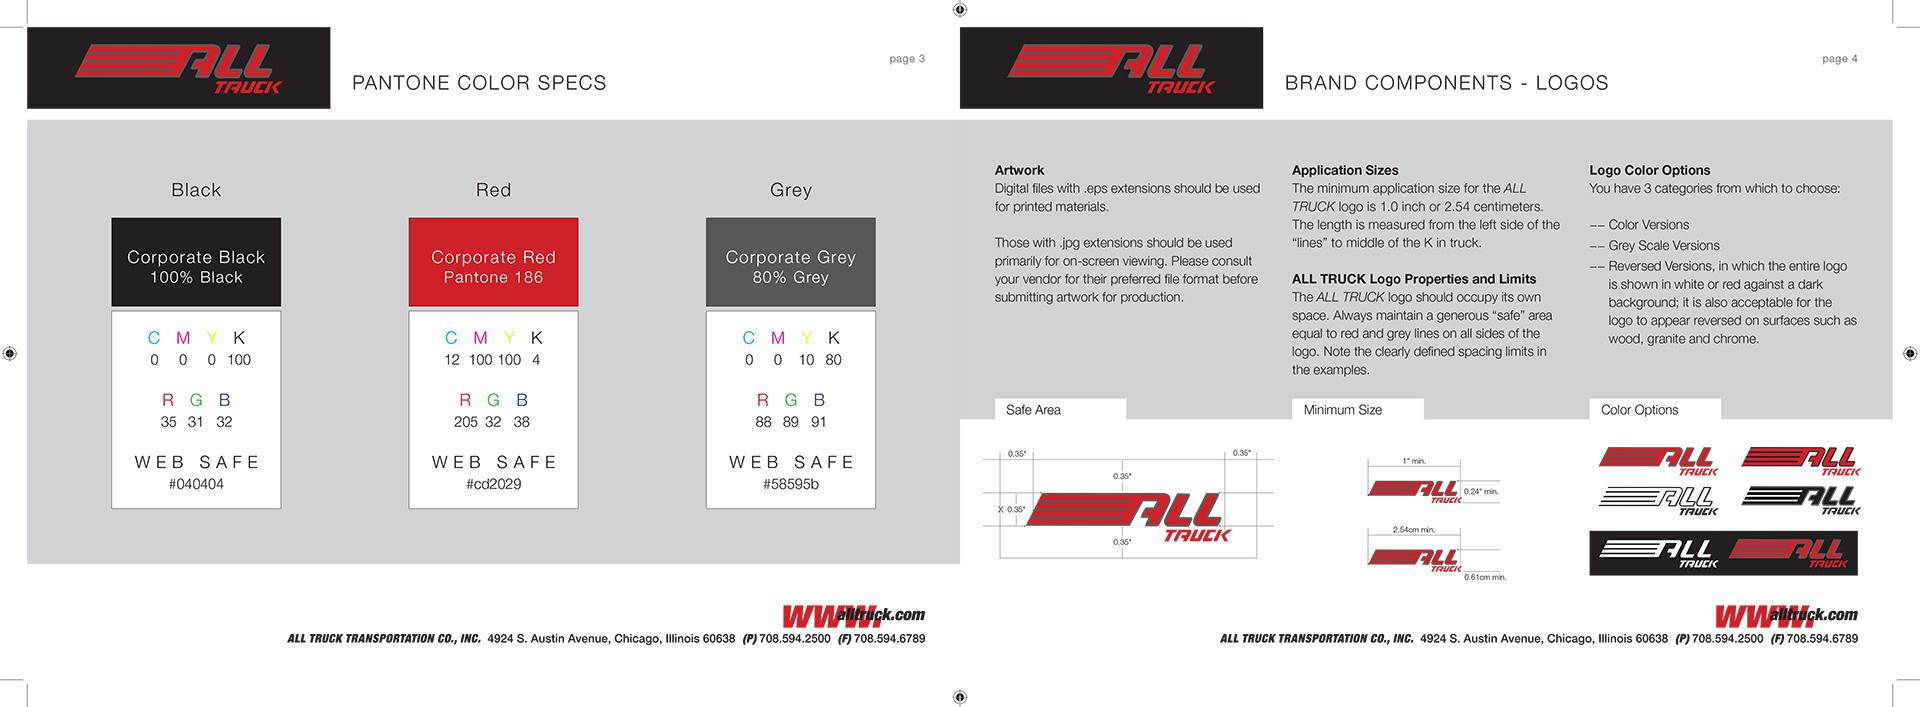 All Truck USA Corporate Identity Standards Manual